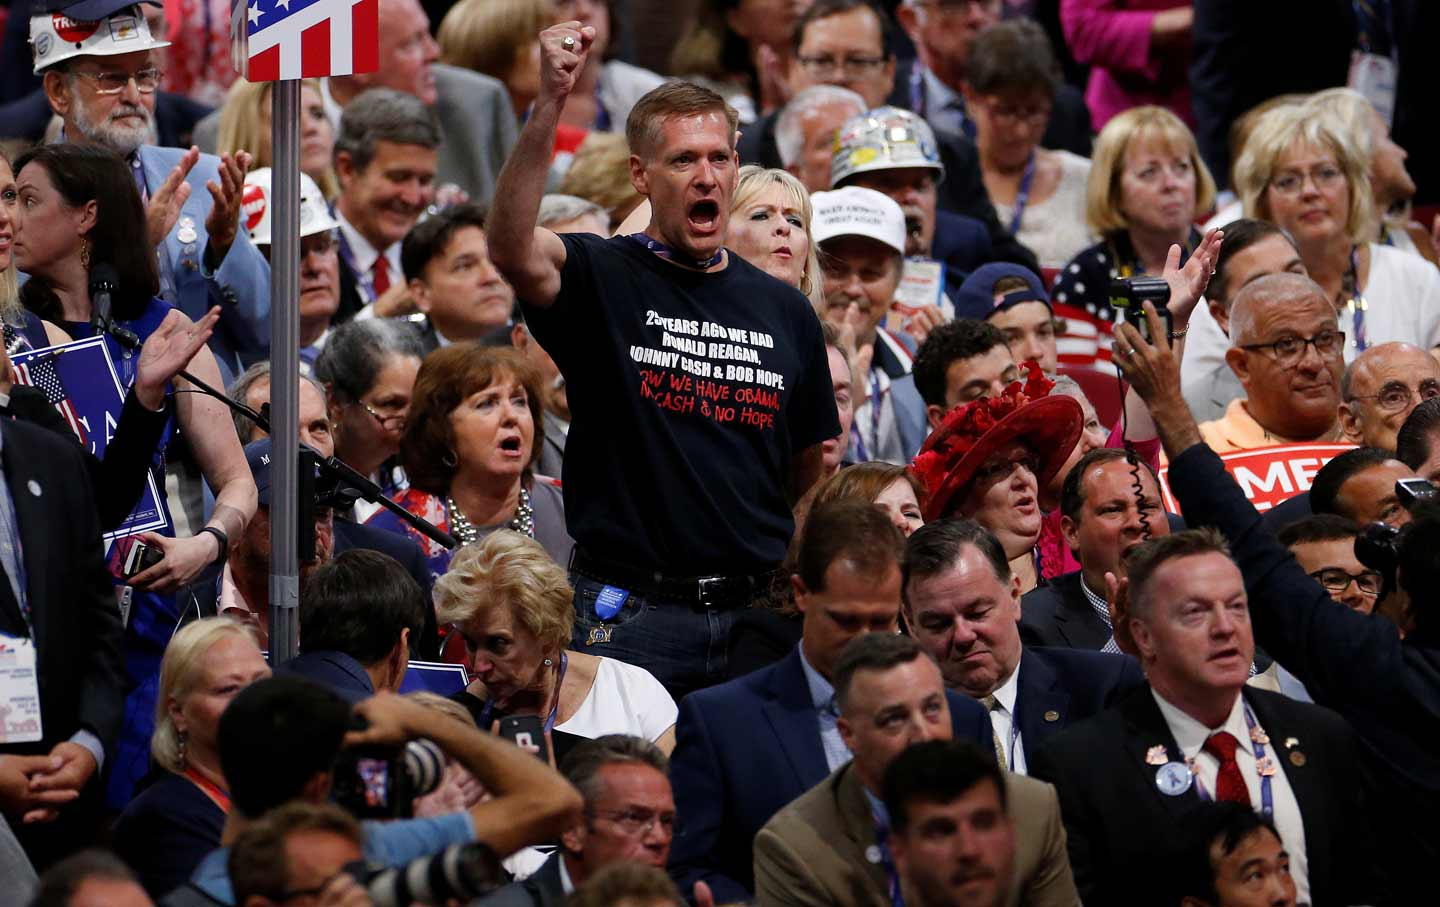 Republican man shouts during RNC